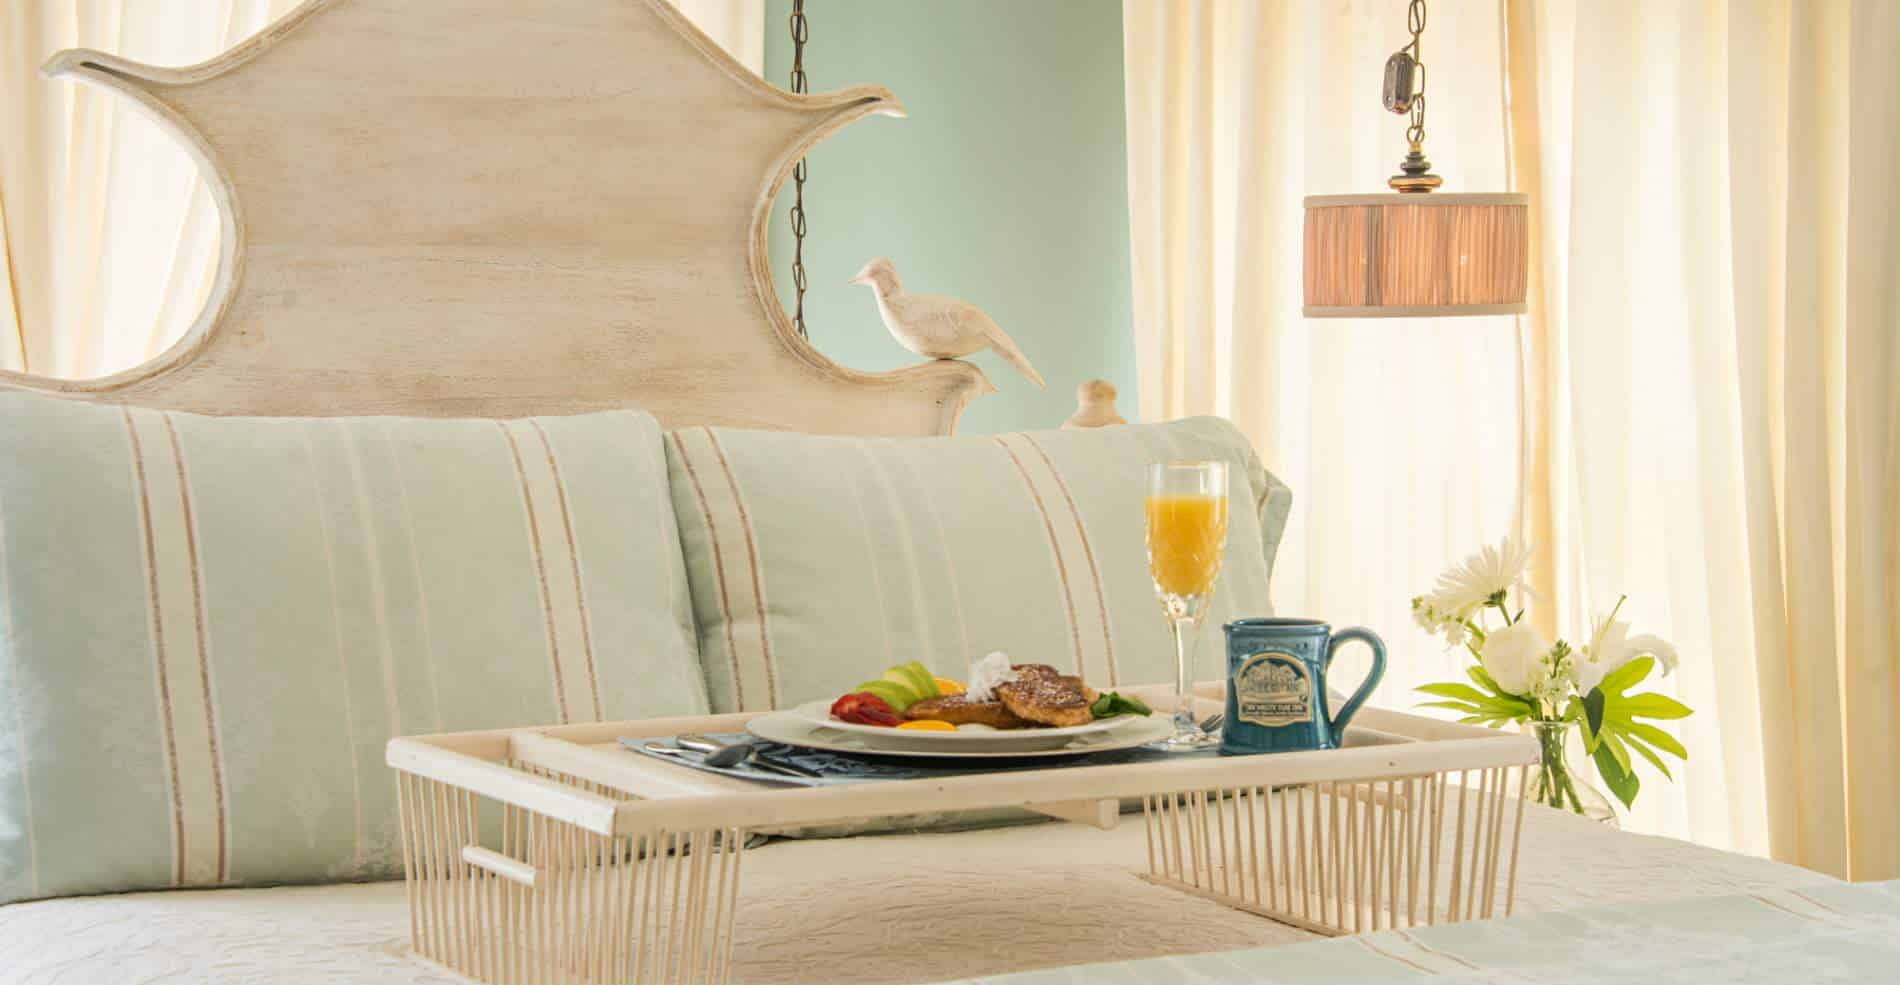 In a light and comfy room, a breakfast tray sits on a bed, with a plate of food, a glass of orange juice and a blue coffee cup